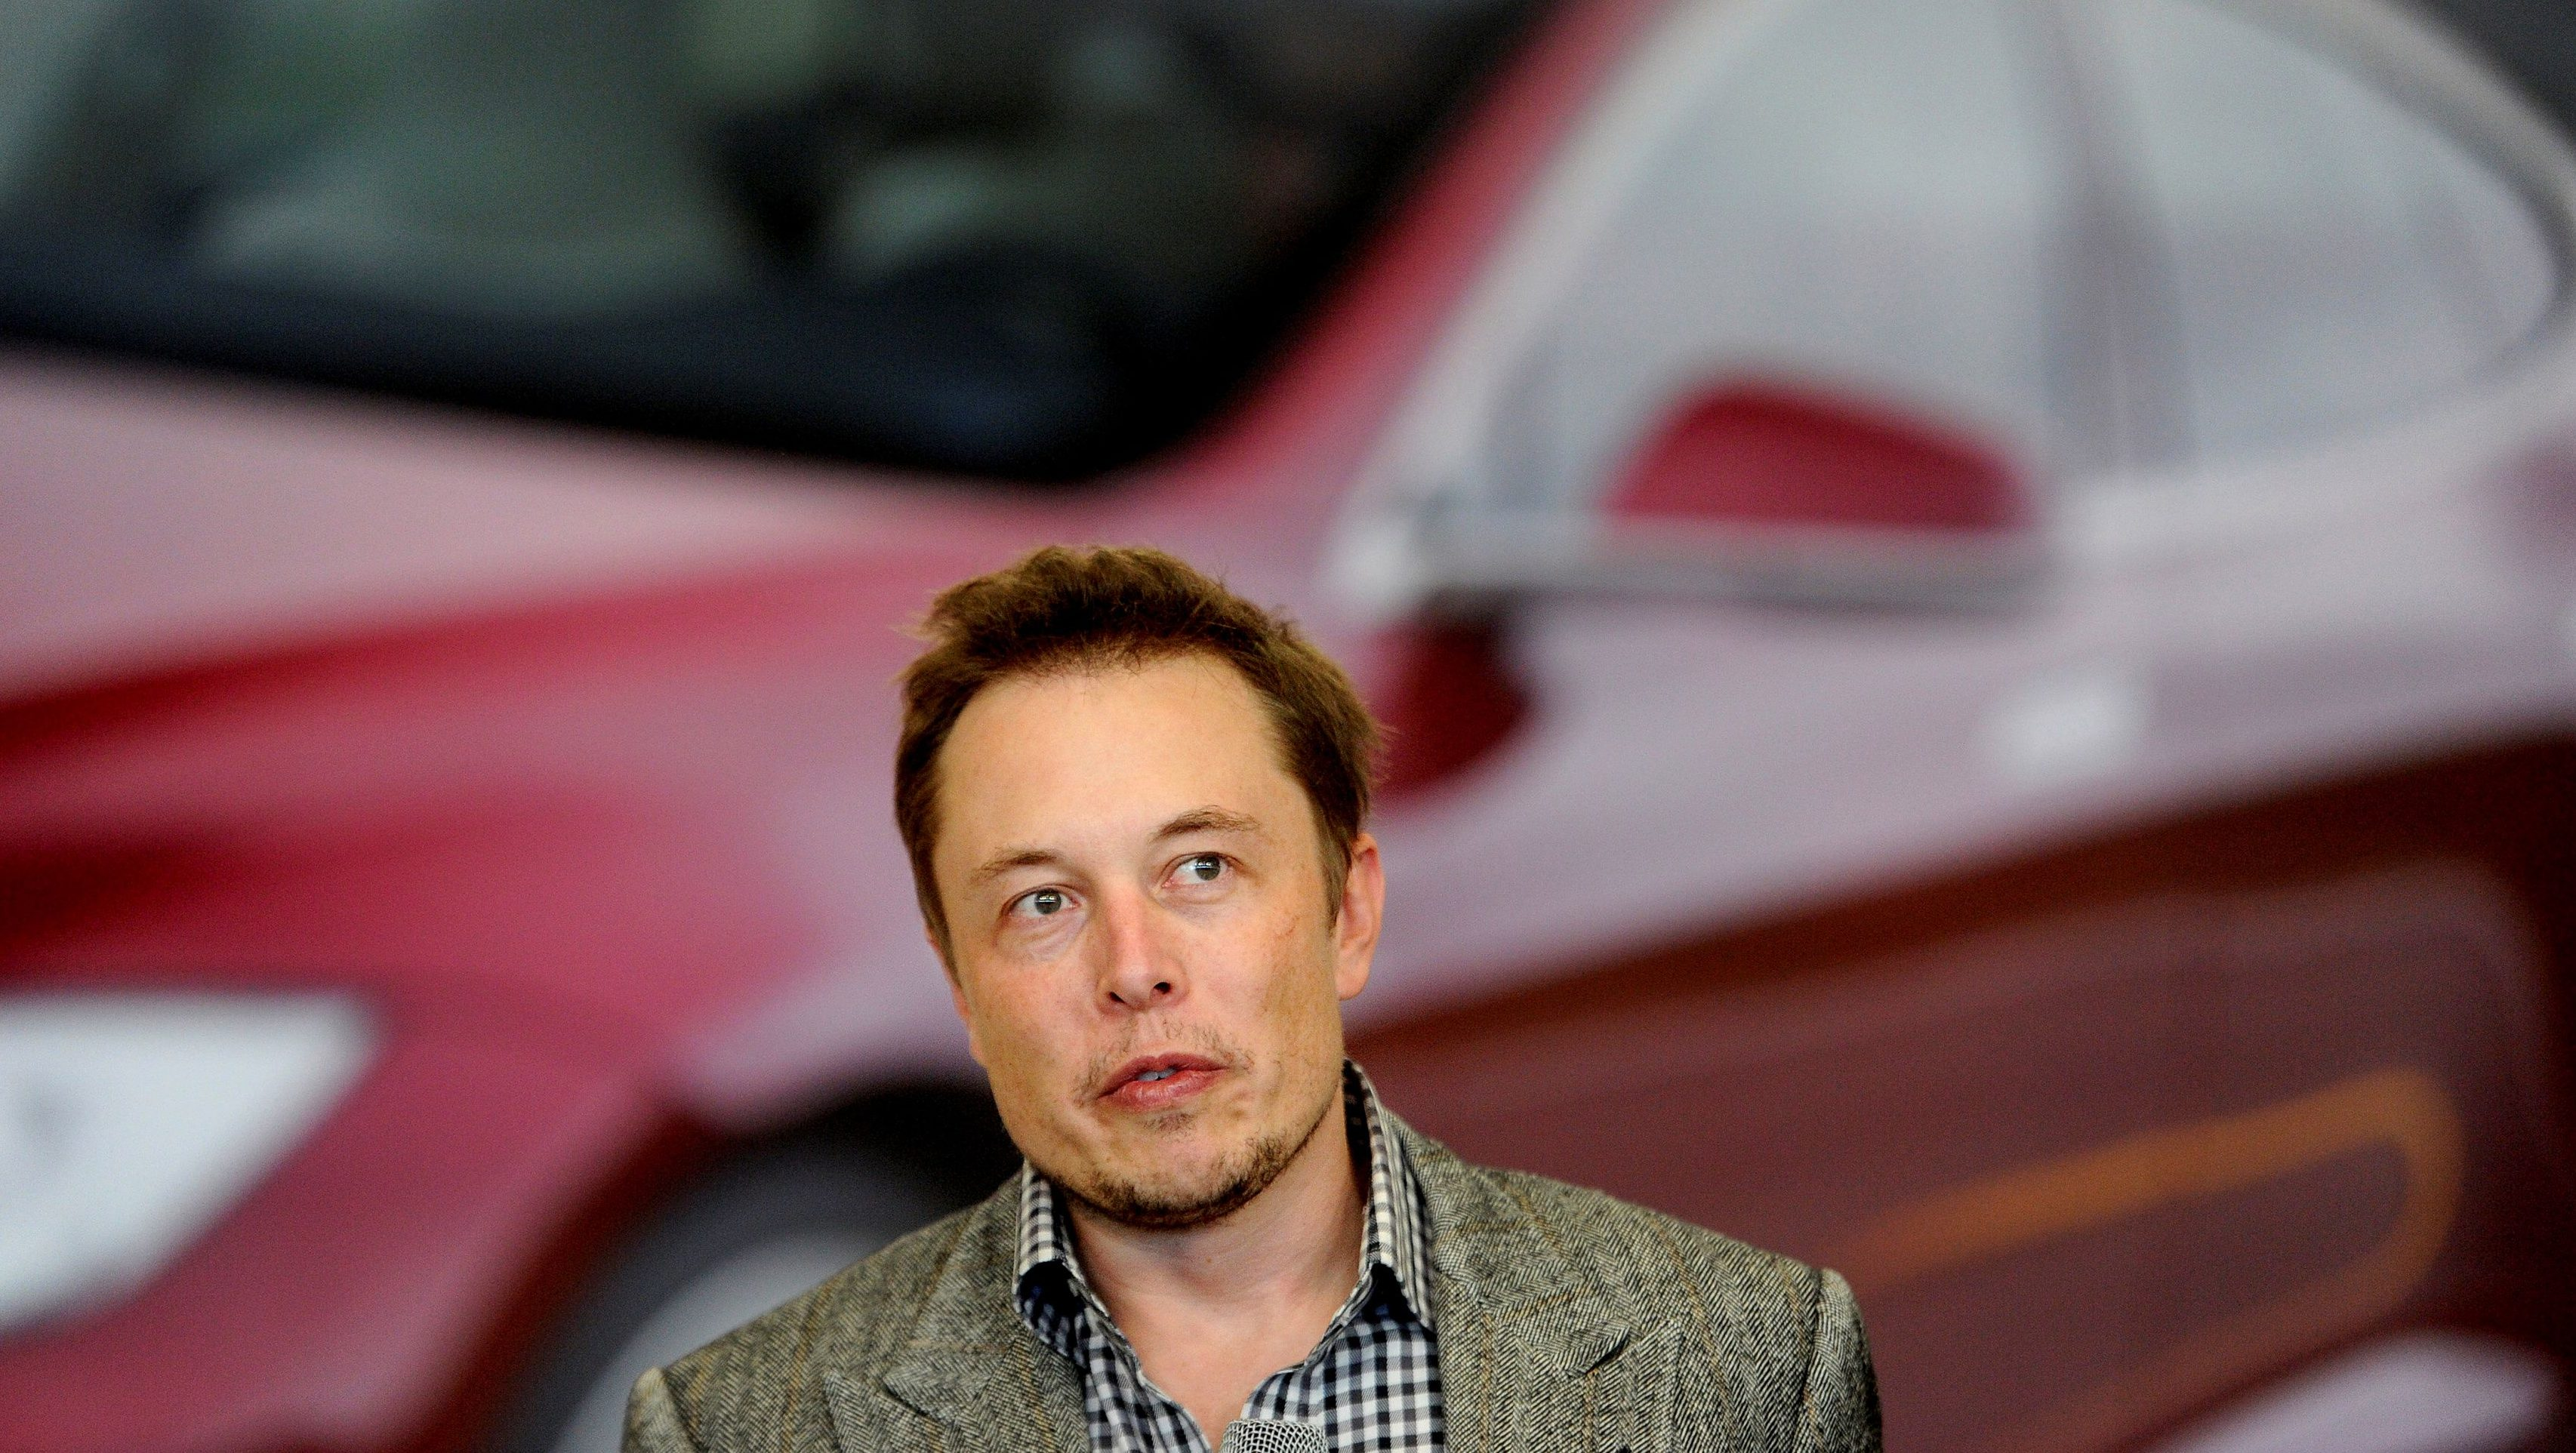 Tesla Chief Executive Office Elon Musk speaks at his company's factory in Fremont, California, U.S., June 22, 2012.